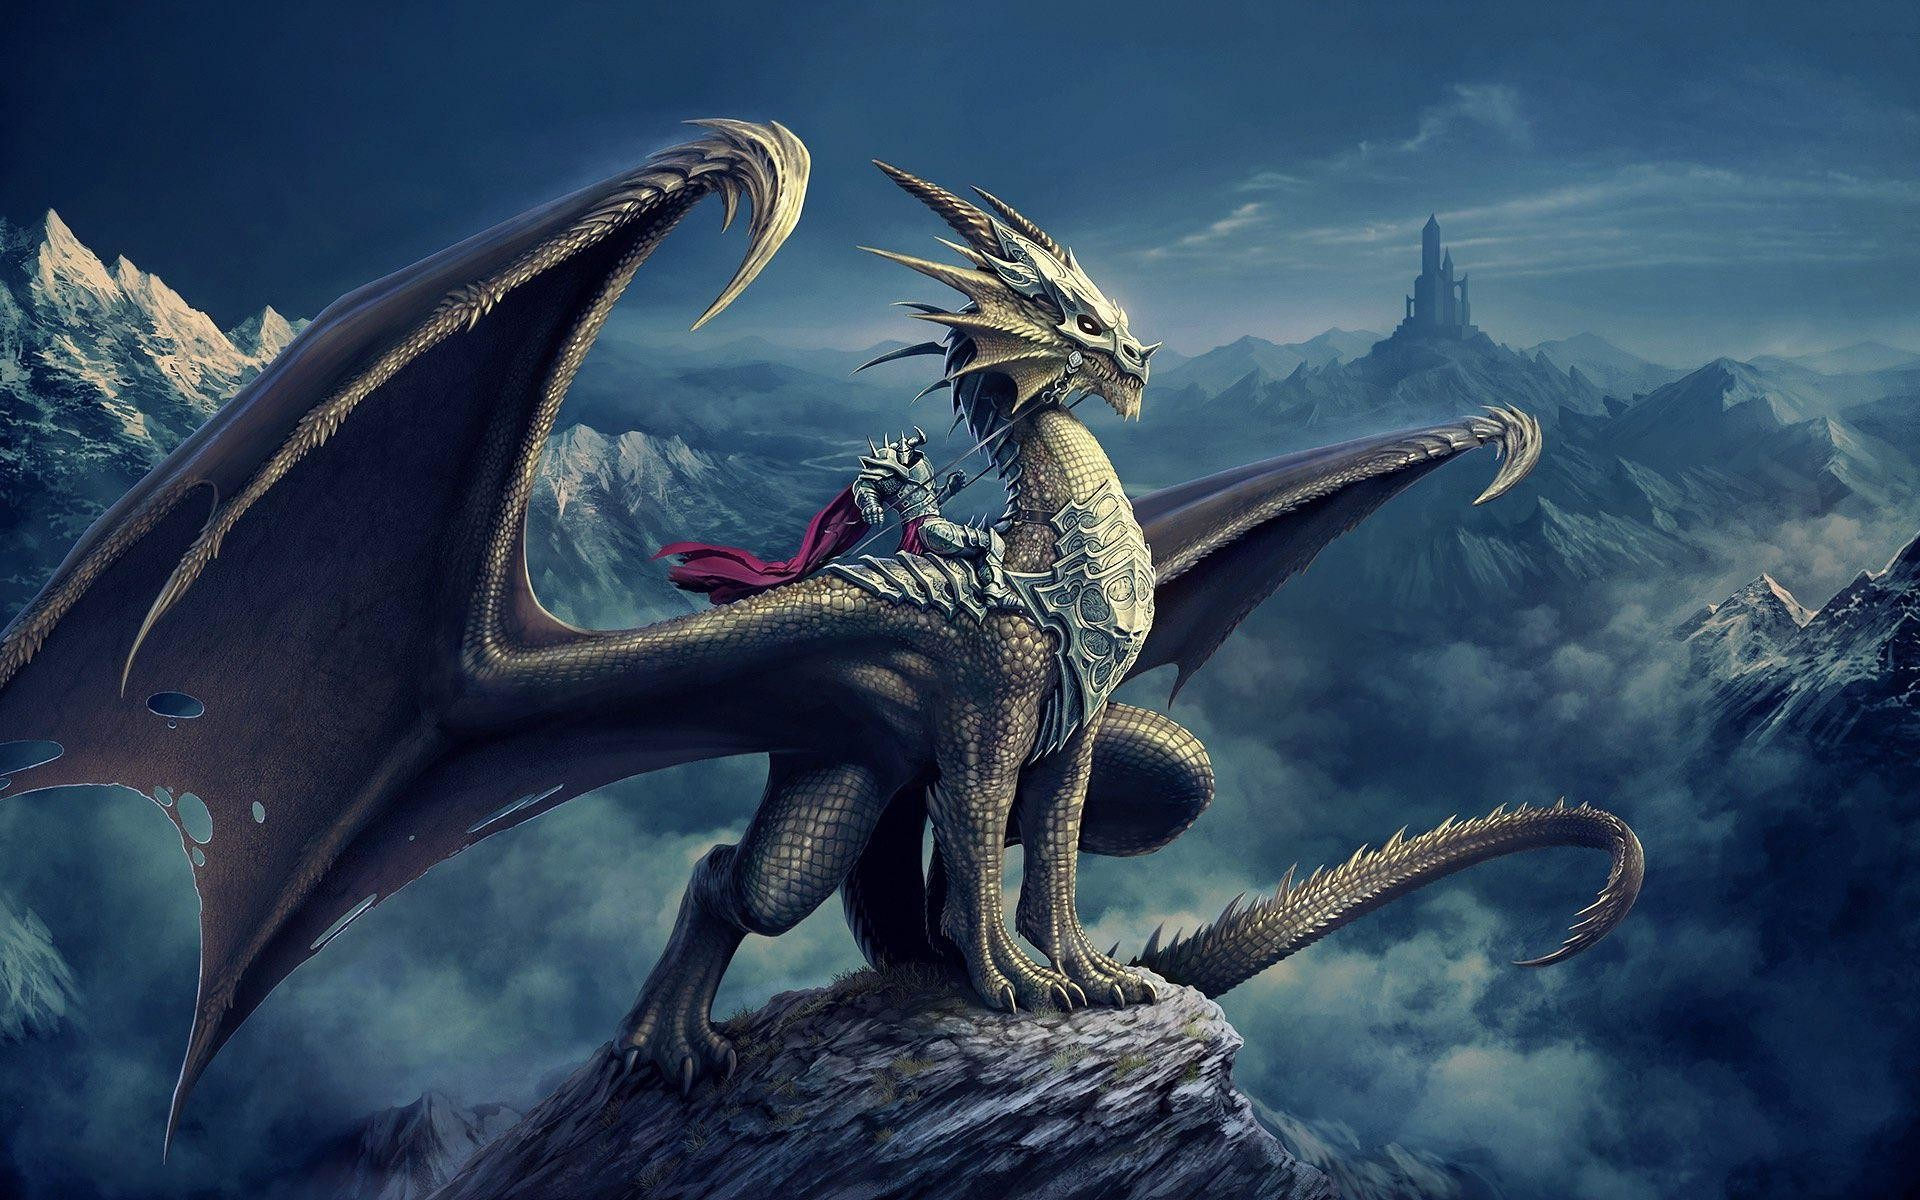 blue dragon wallpaper hd (70+ images)